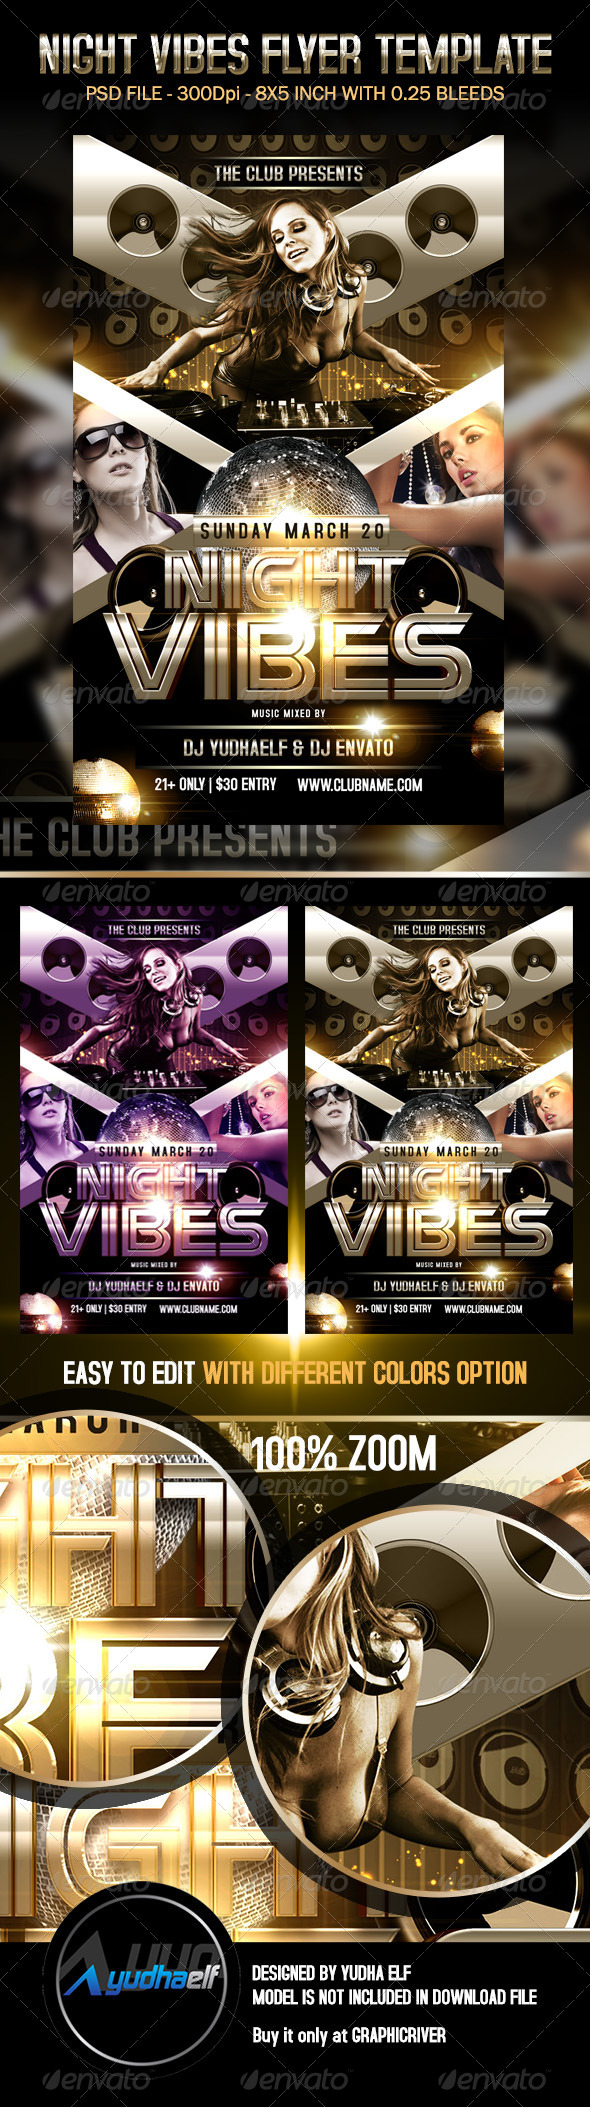 Night Vibes Flyer Template - Clubs & Parties Events